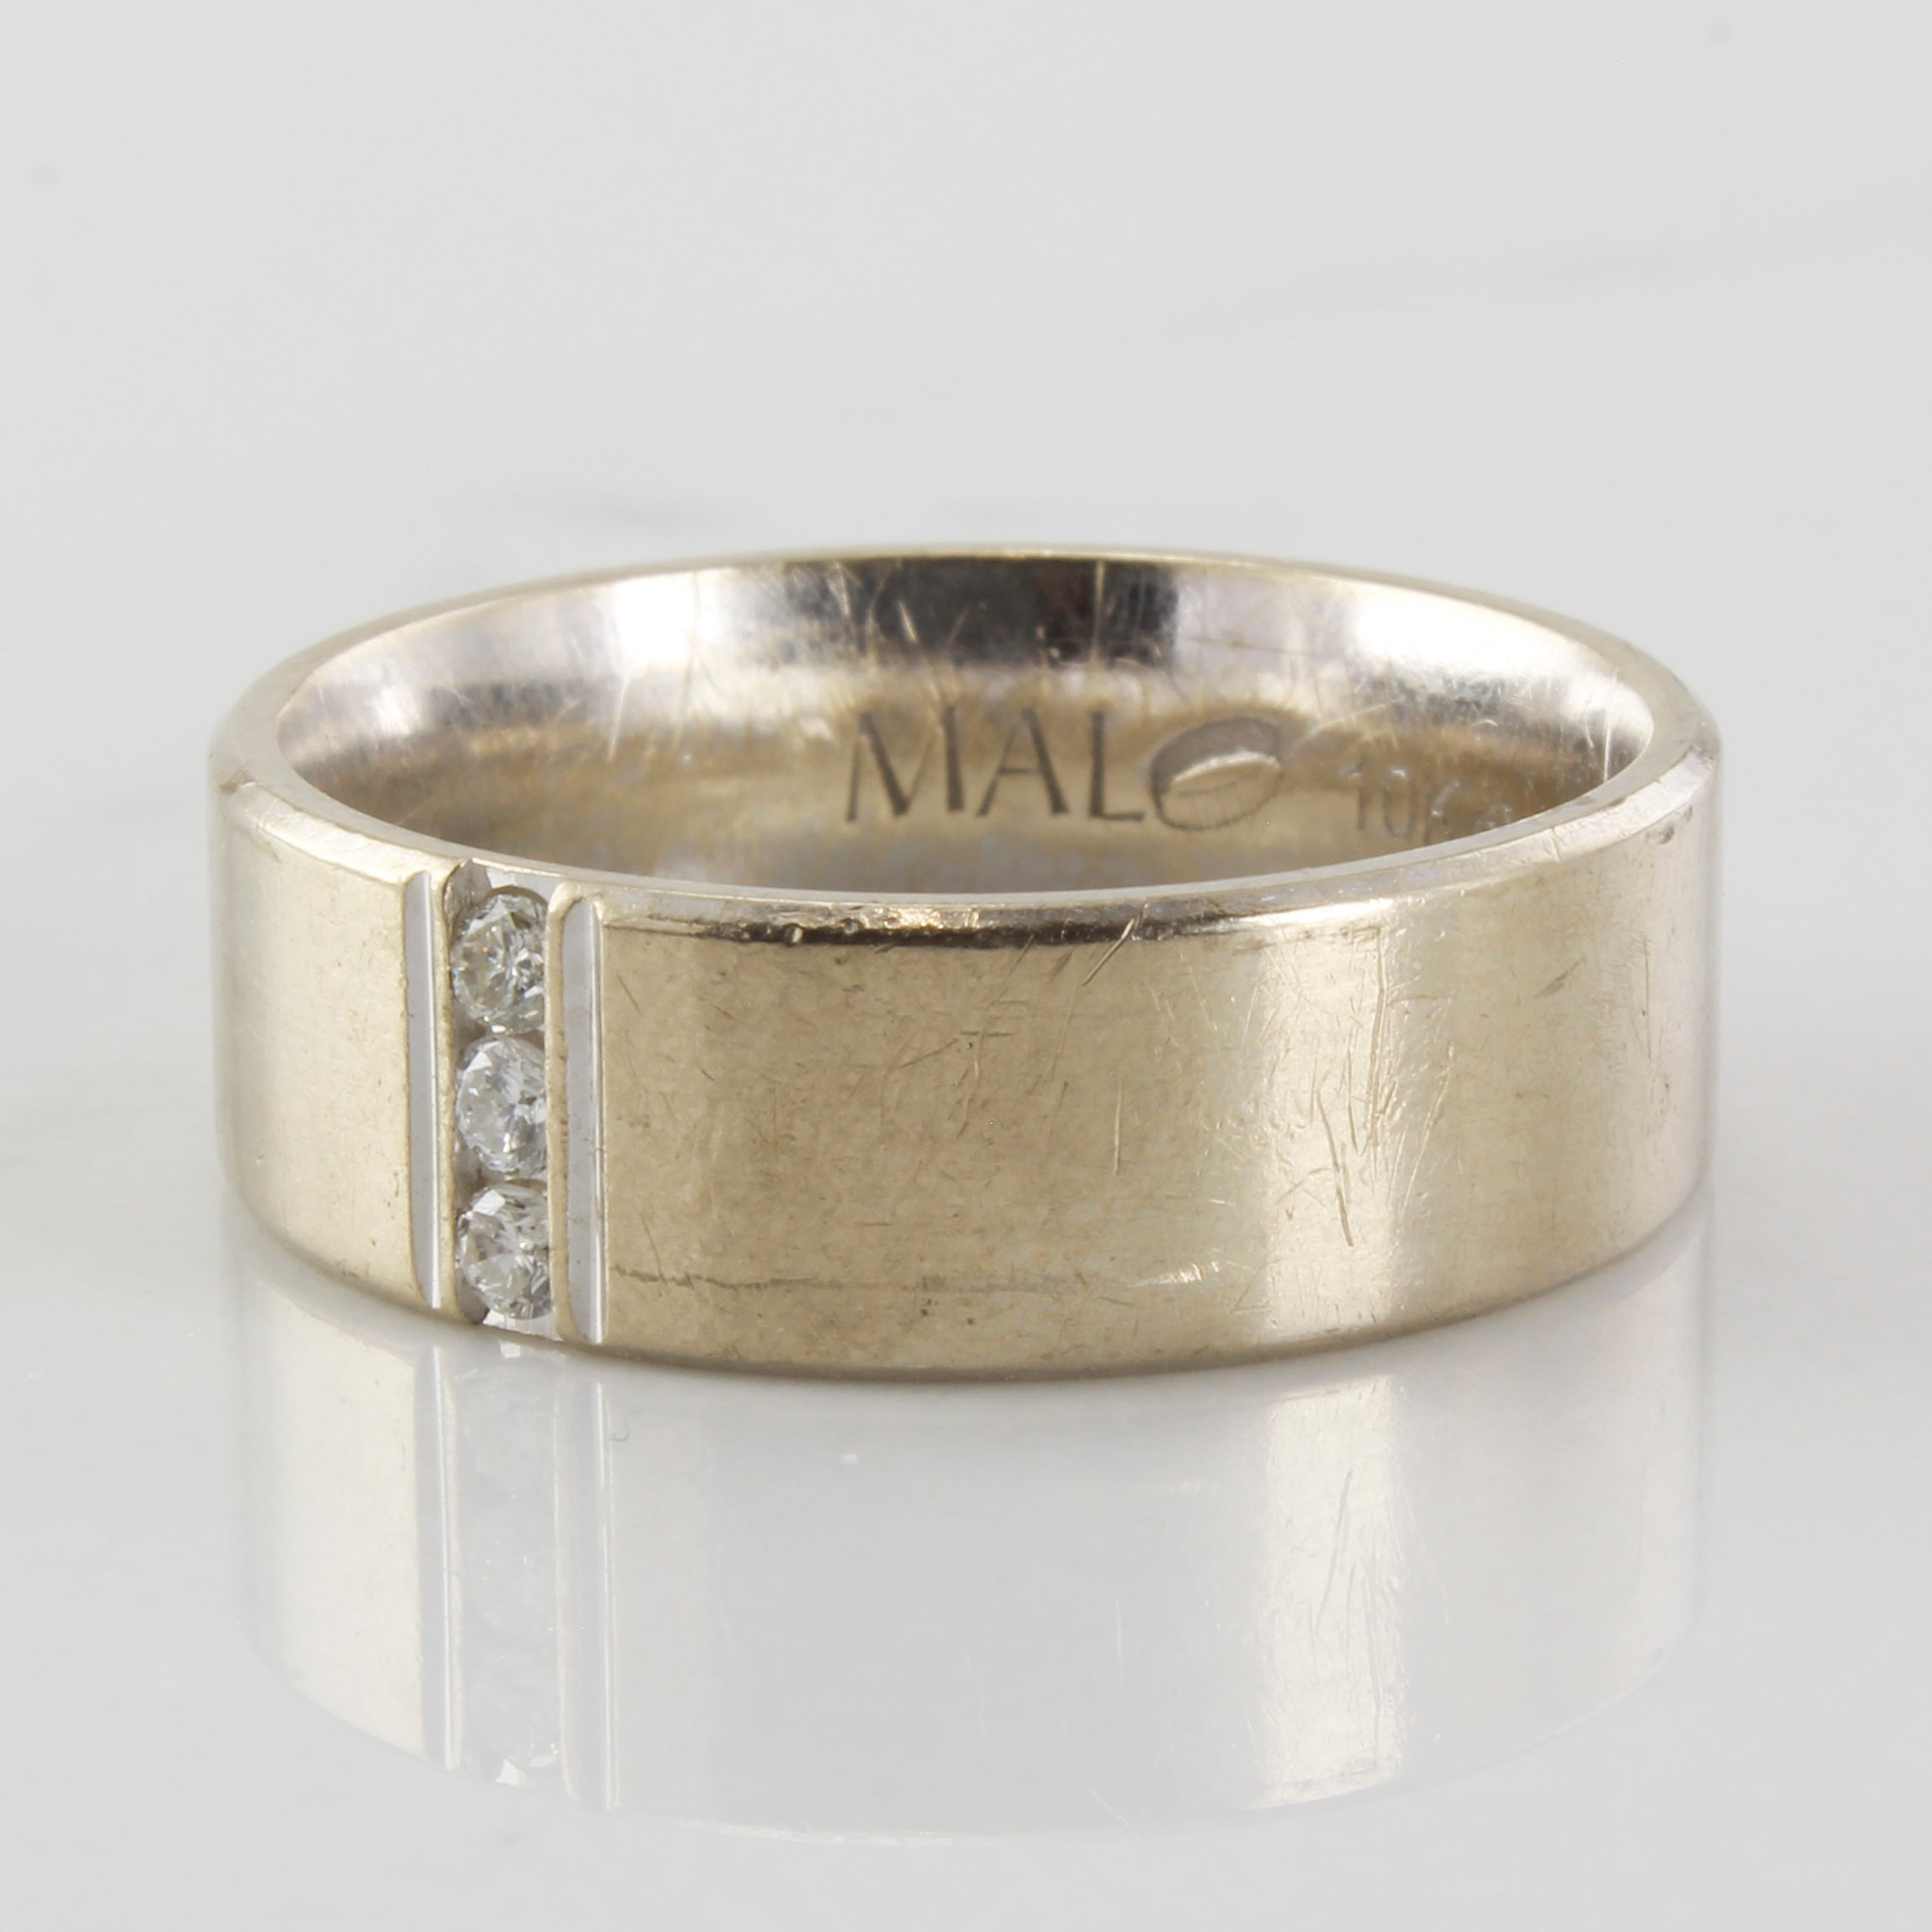 'Malo' Vertical Set Diamond Band | 0.09ctw | SZ 9.5 |